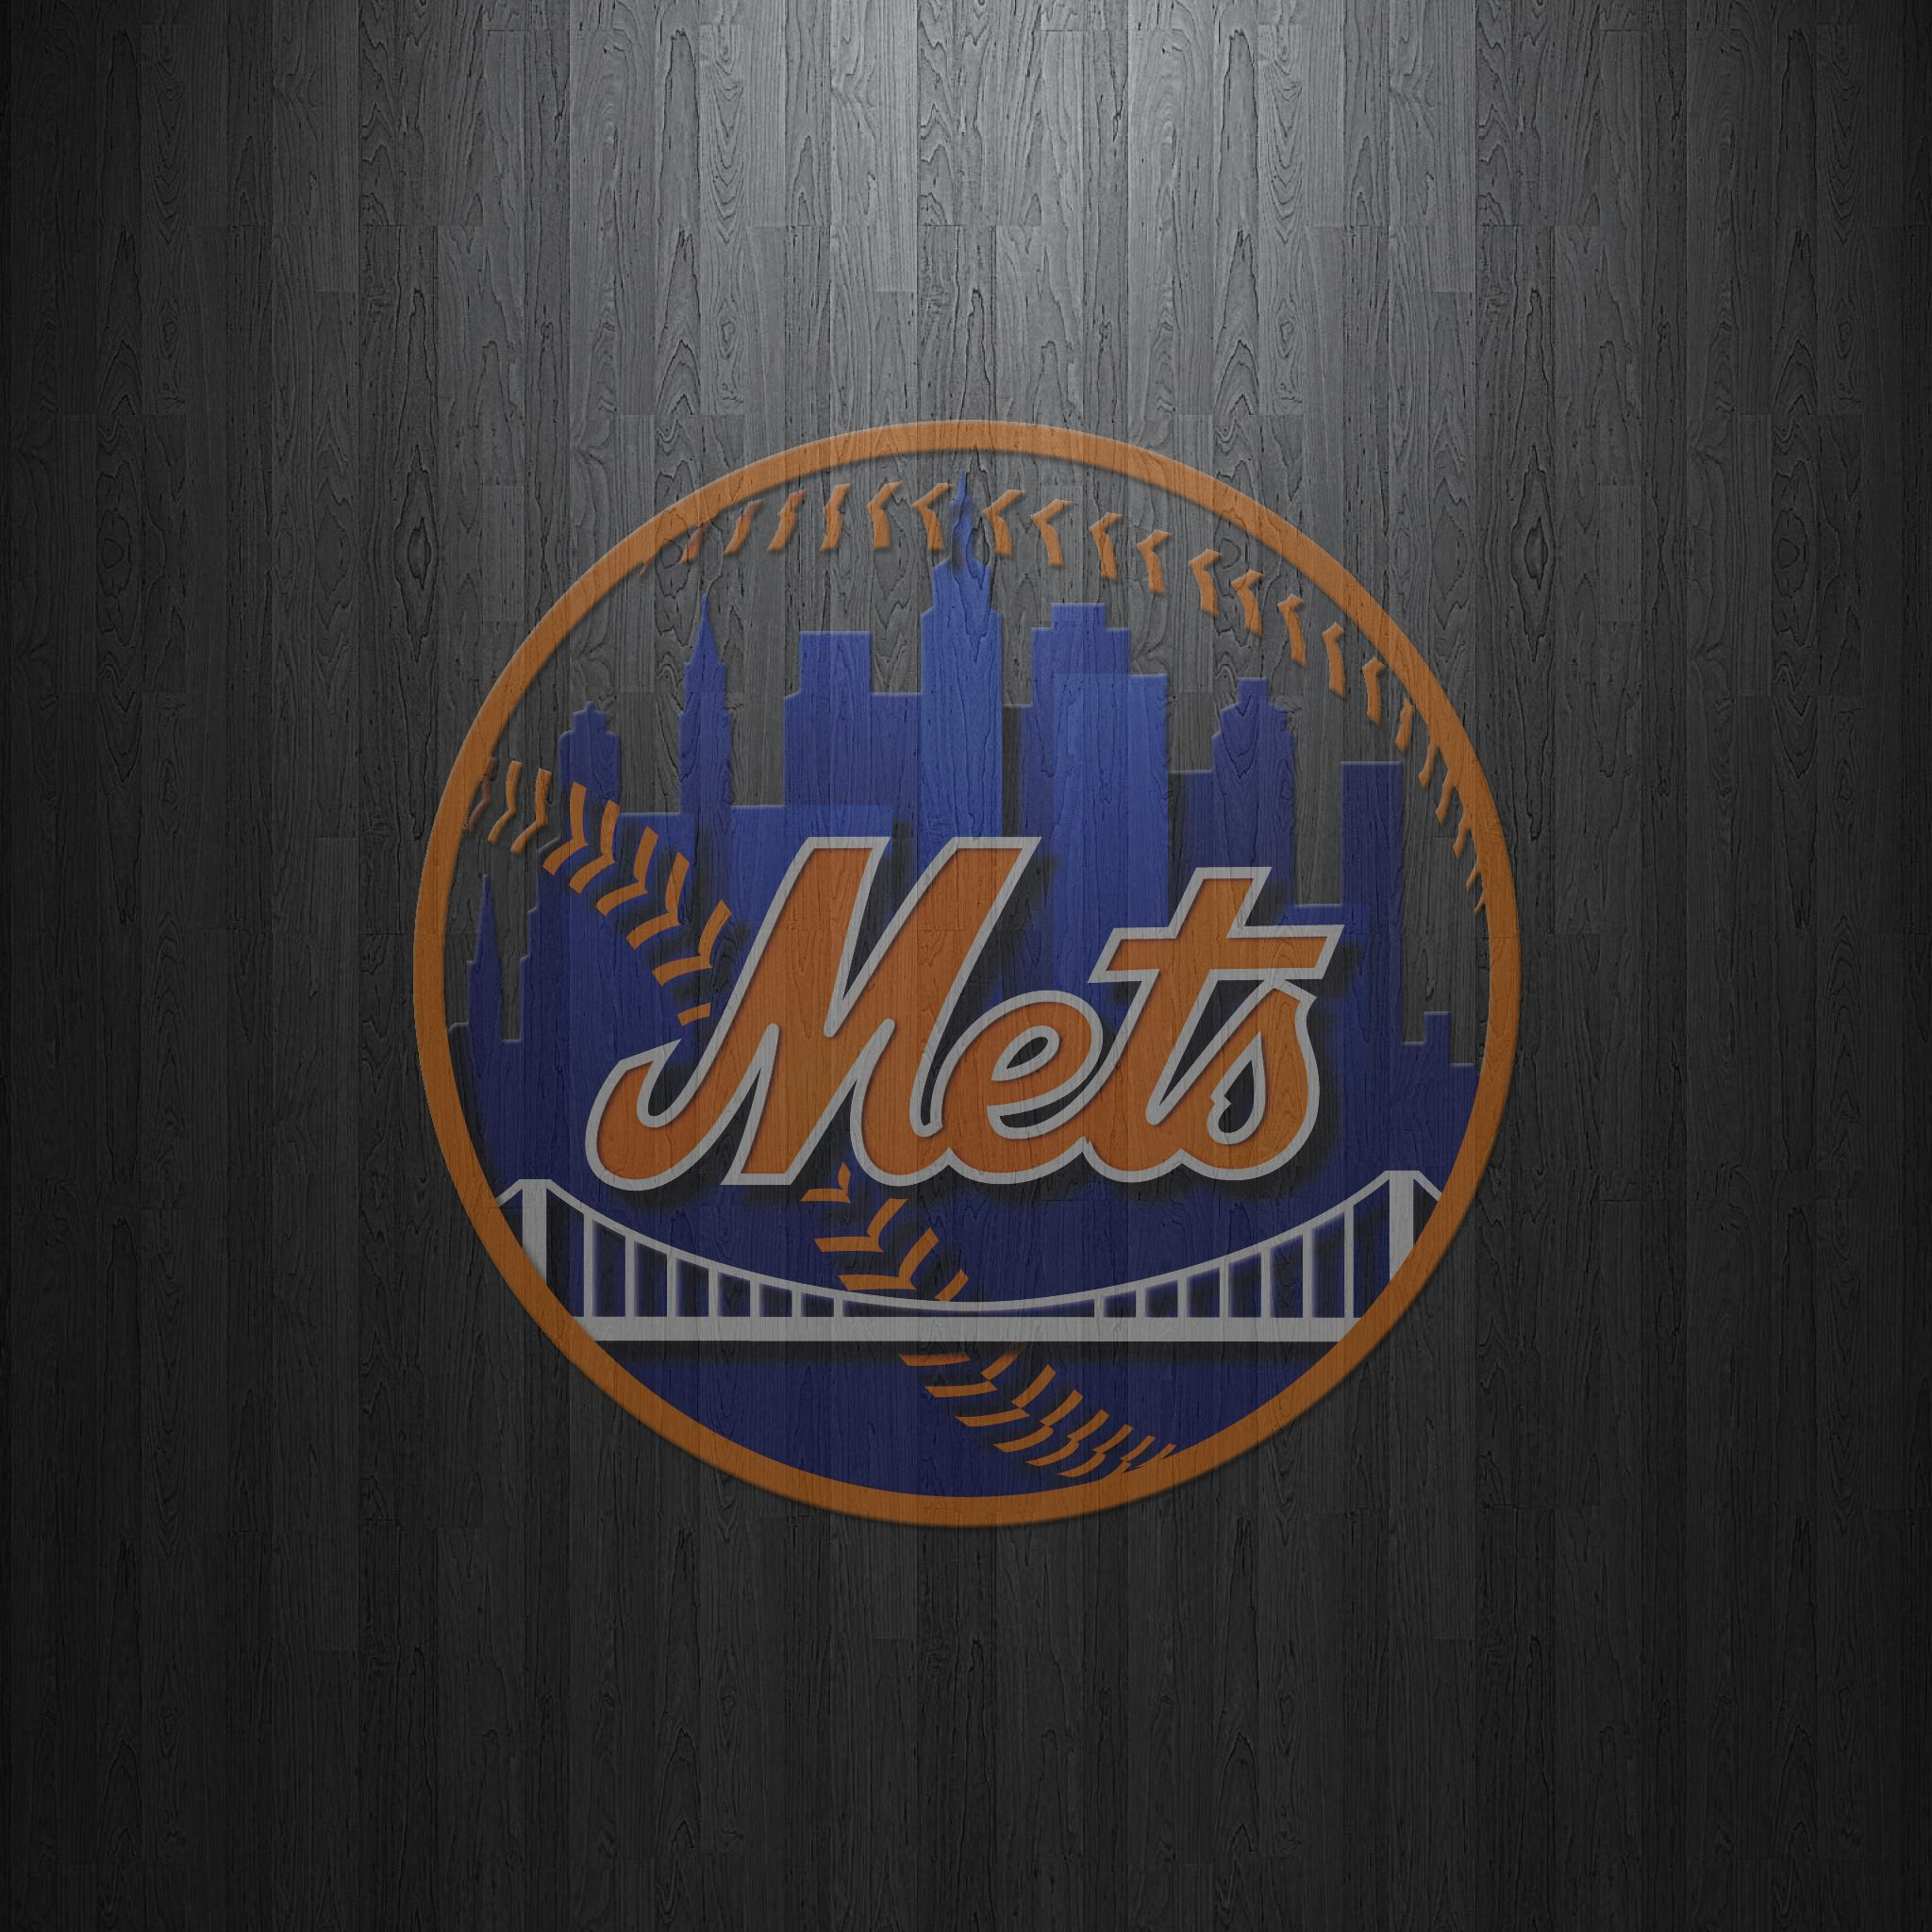 New York Mets Wallpaper New York Mets Desktop Wallpapers Iphone Wallpaper Usa Iphone Wallpaper Ios Wallpapers